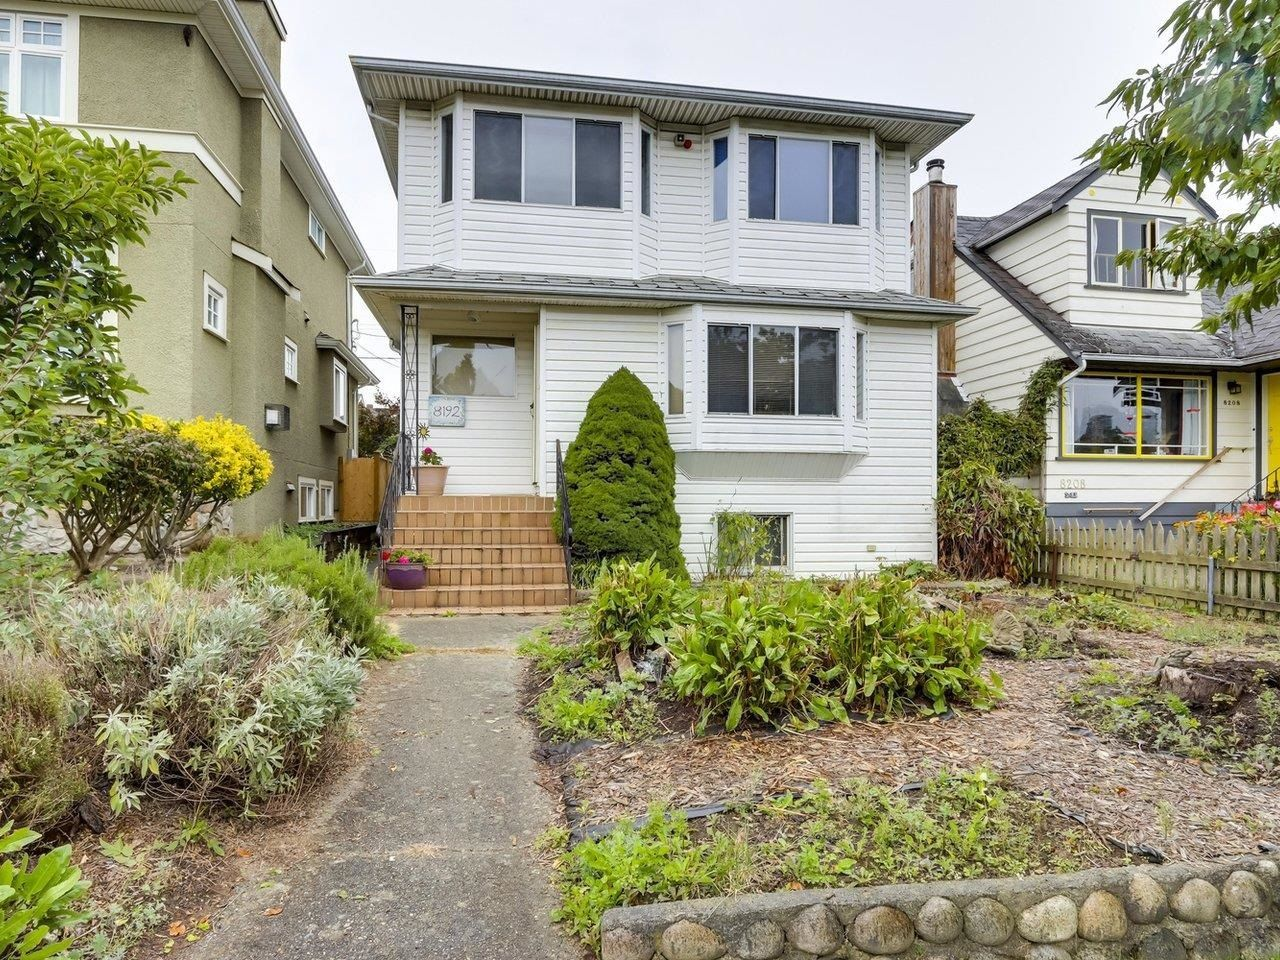 """Main Photo: 8192 HAIG Street in Vancouver: Marpole House for sale in """"MARPOLE"""" (Vancouver West)  : MLS®# R2619264"""